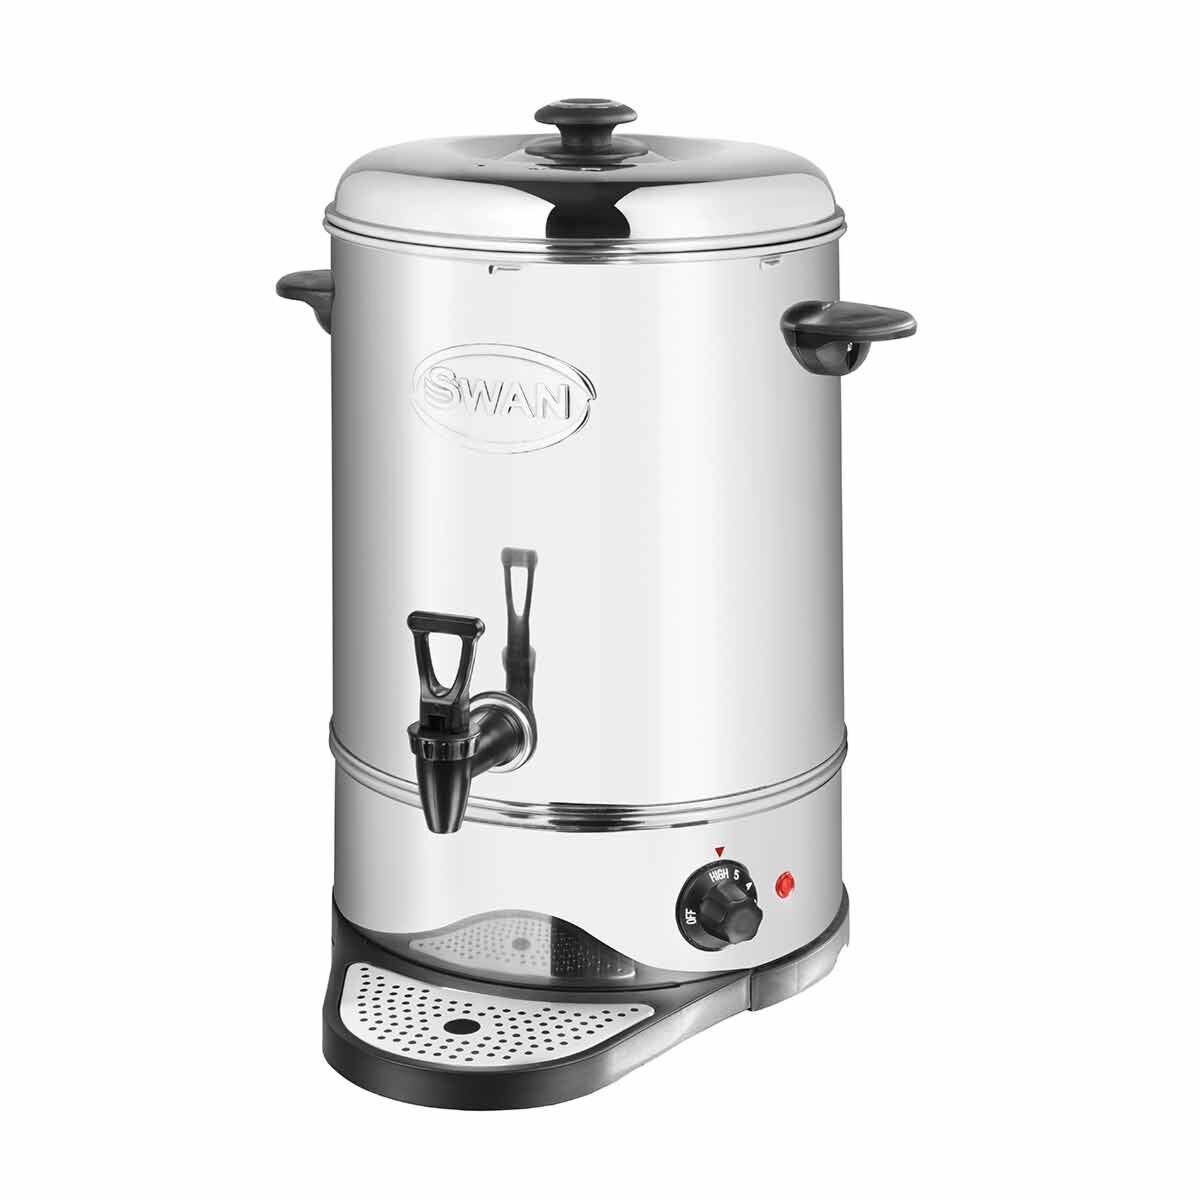 Swan Stainless Steel Catering Urn 20L